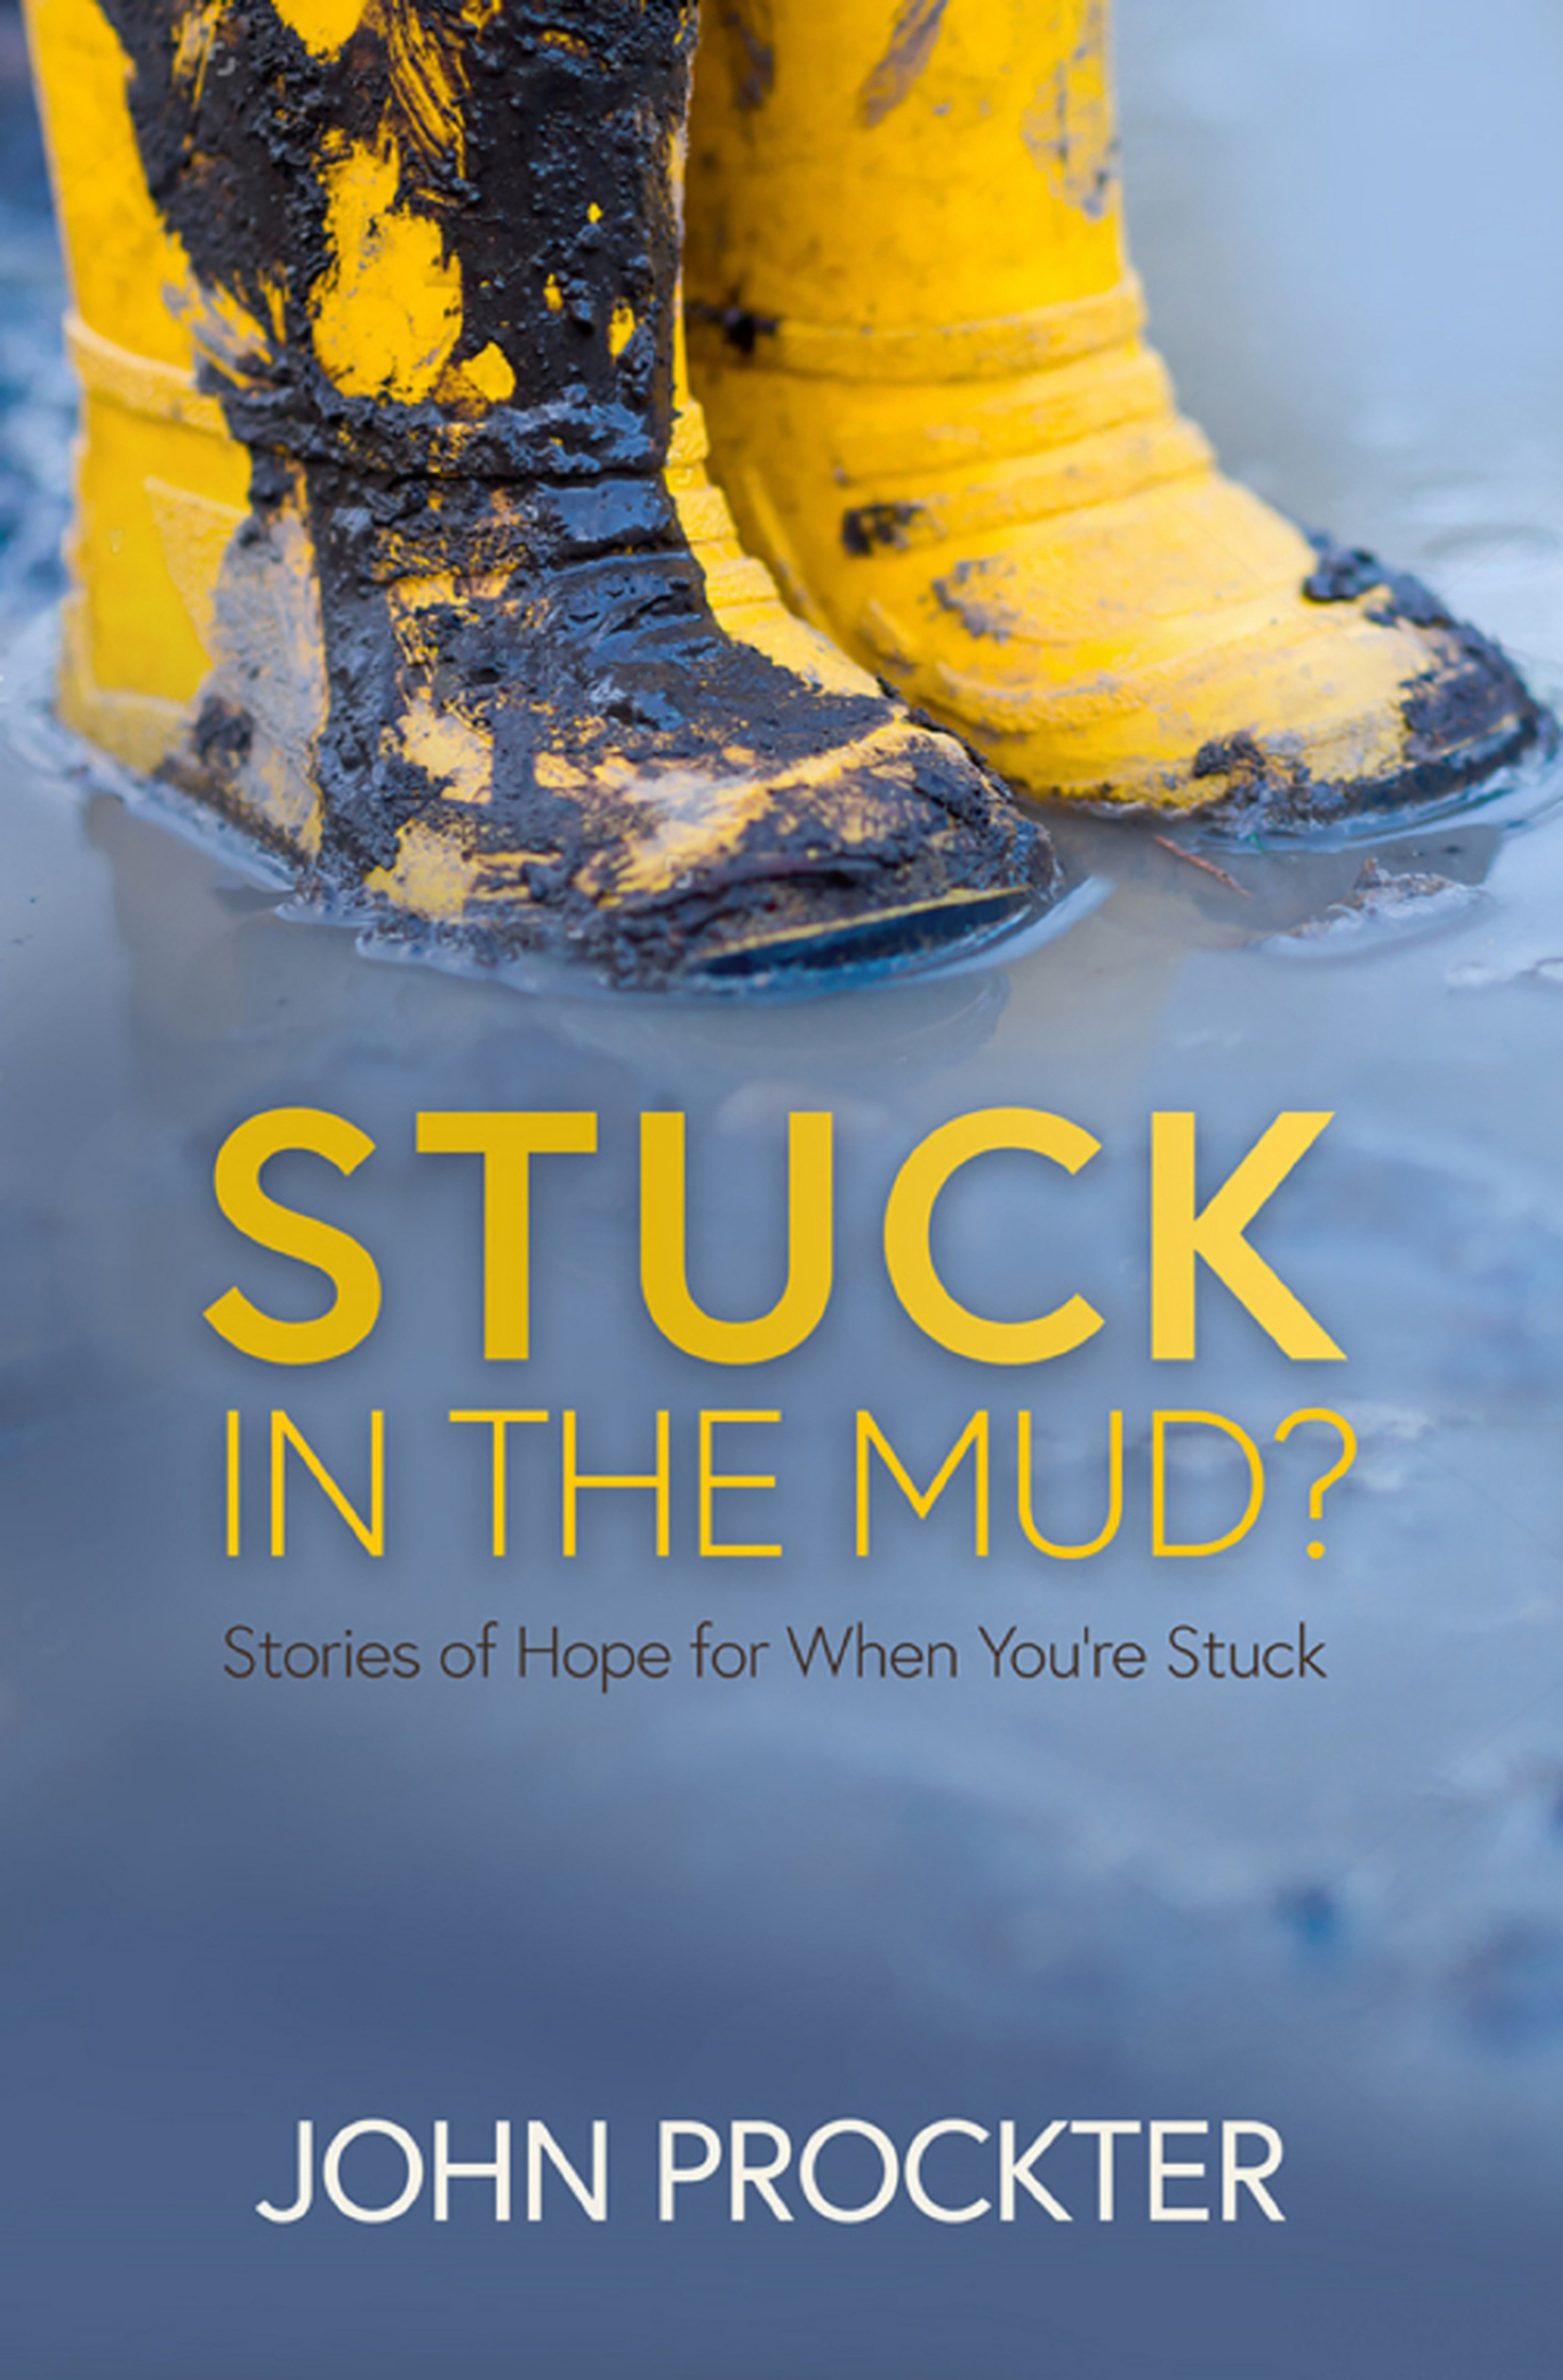 Stuck in the Mud?